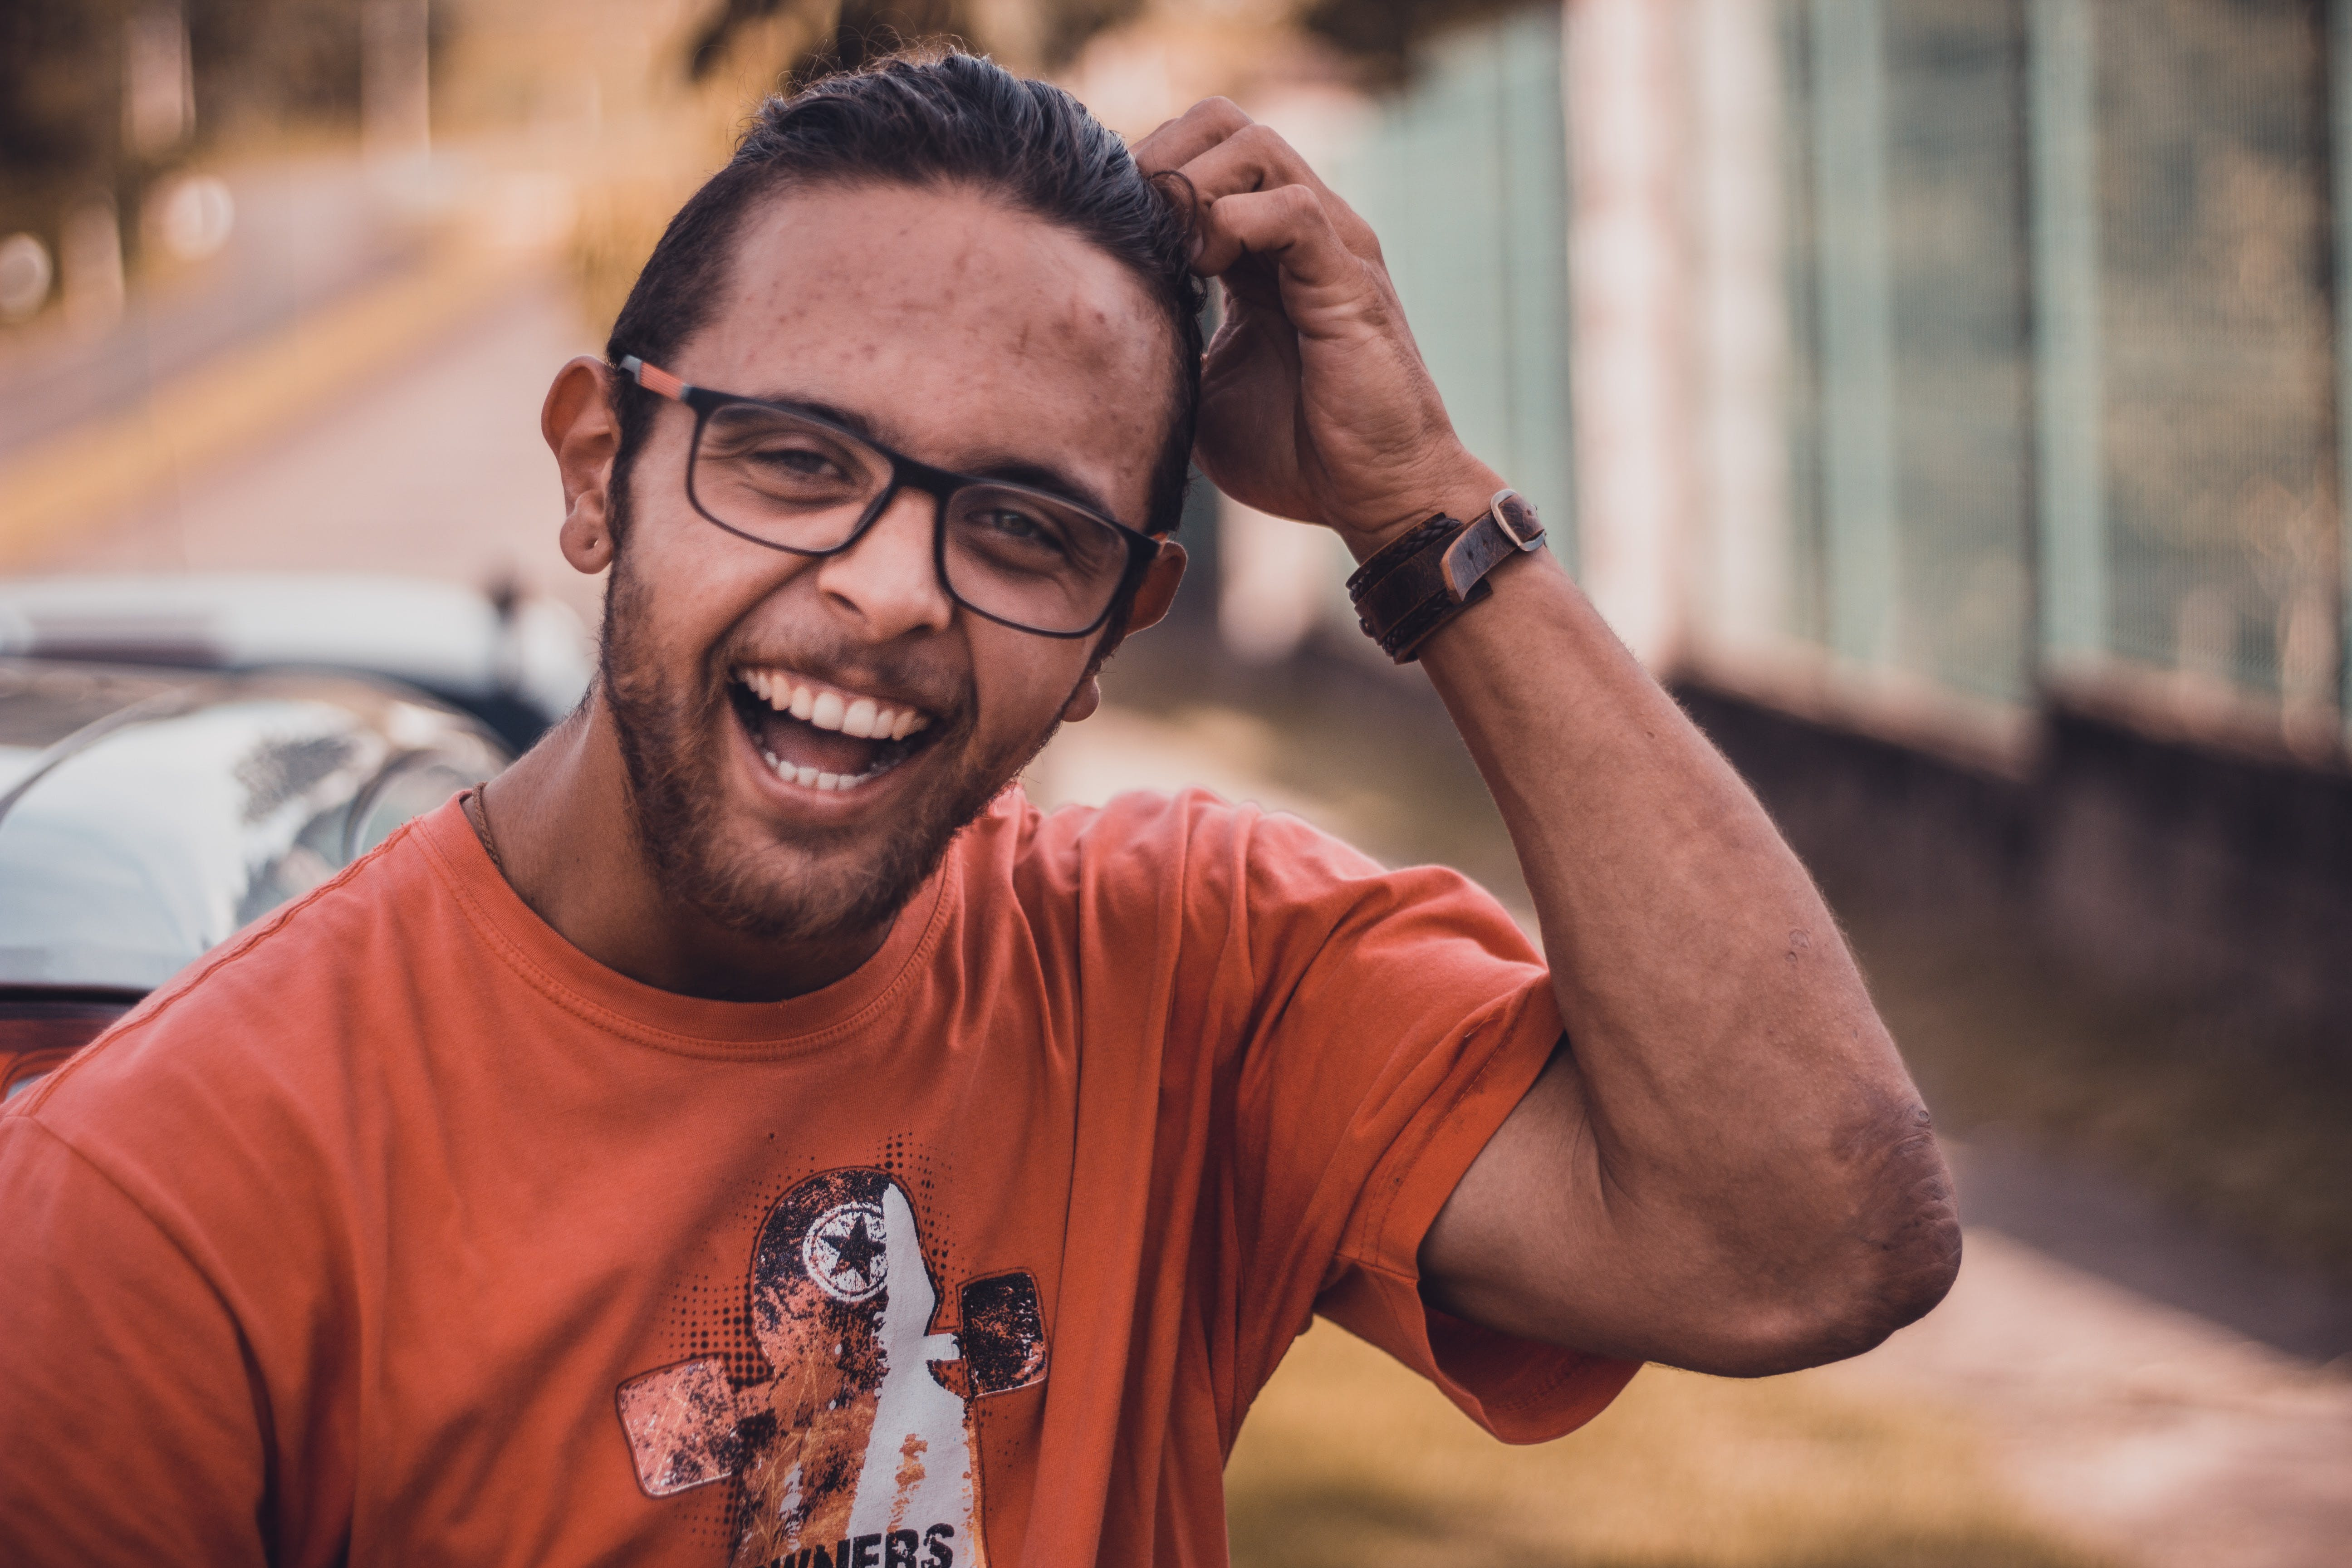 Selective Focus Photography of Man Smiling Putting Hands on Head